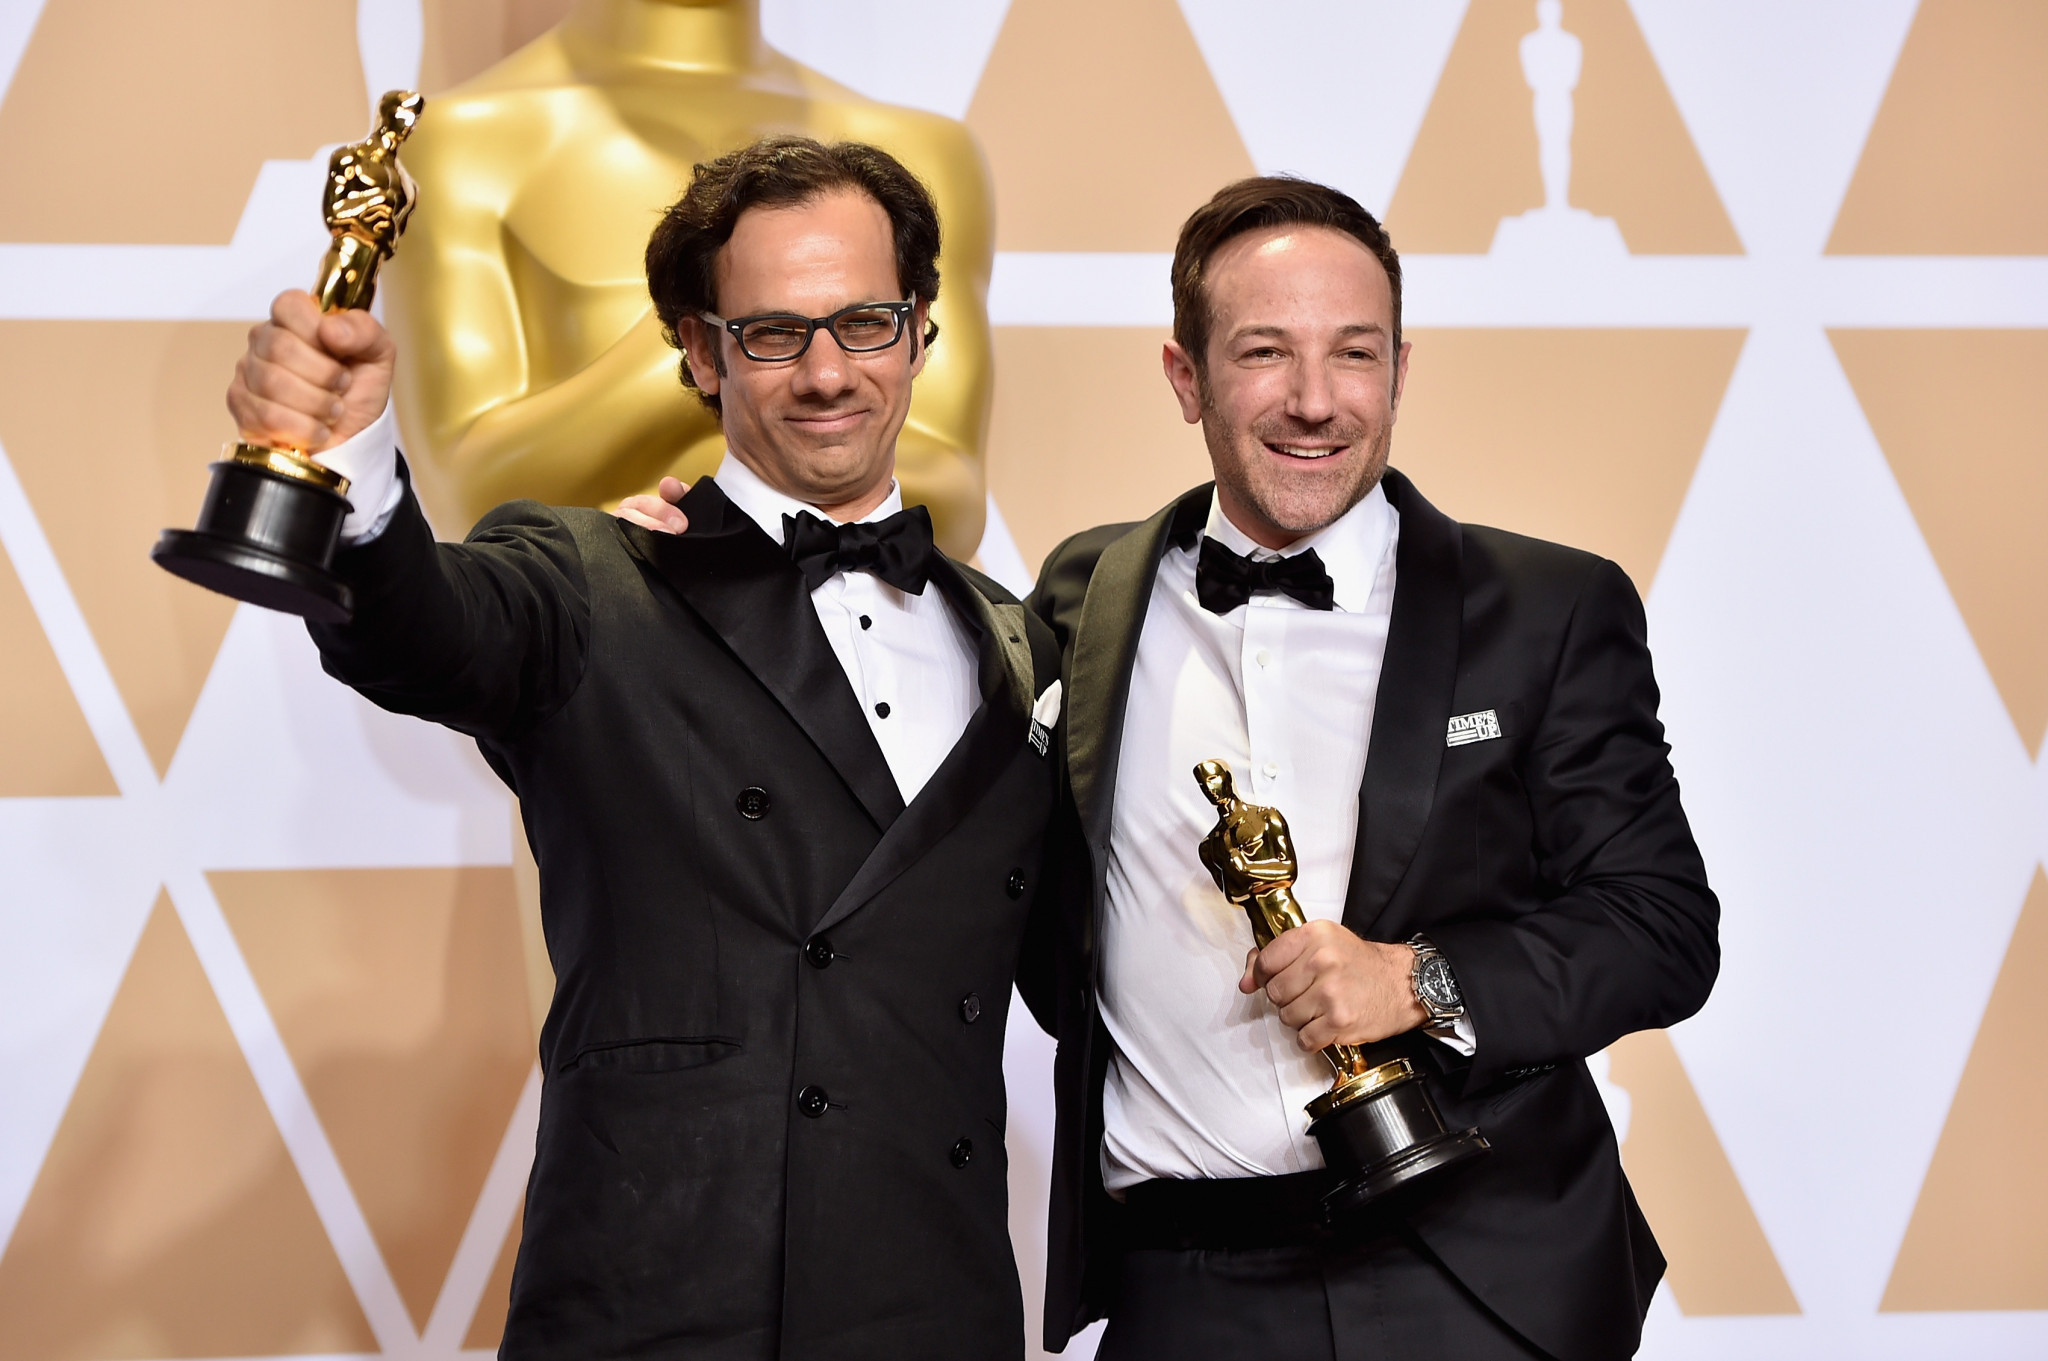 Doping documentary 'Icarus' wins Oscar